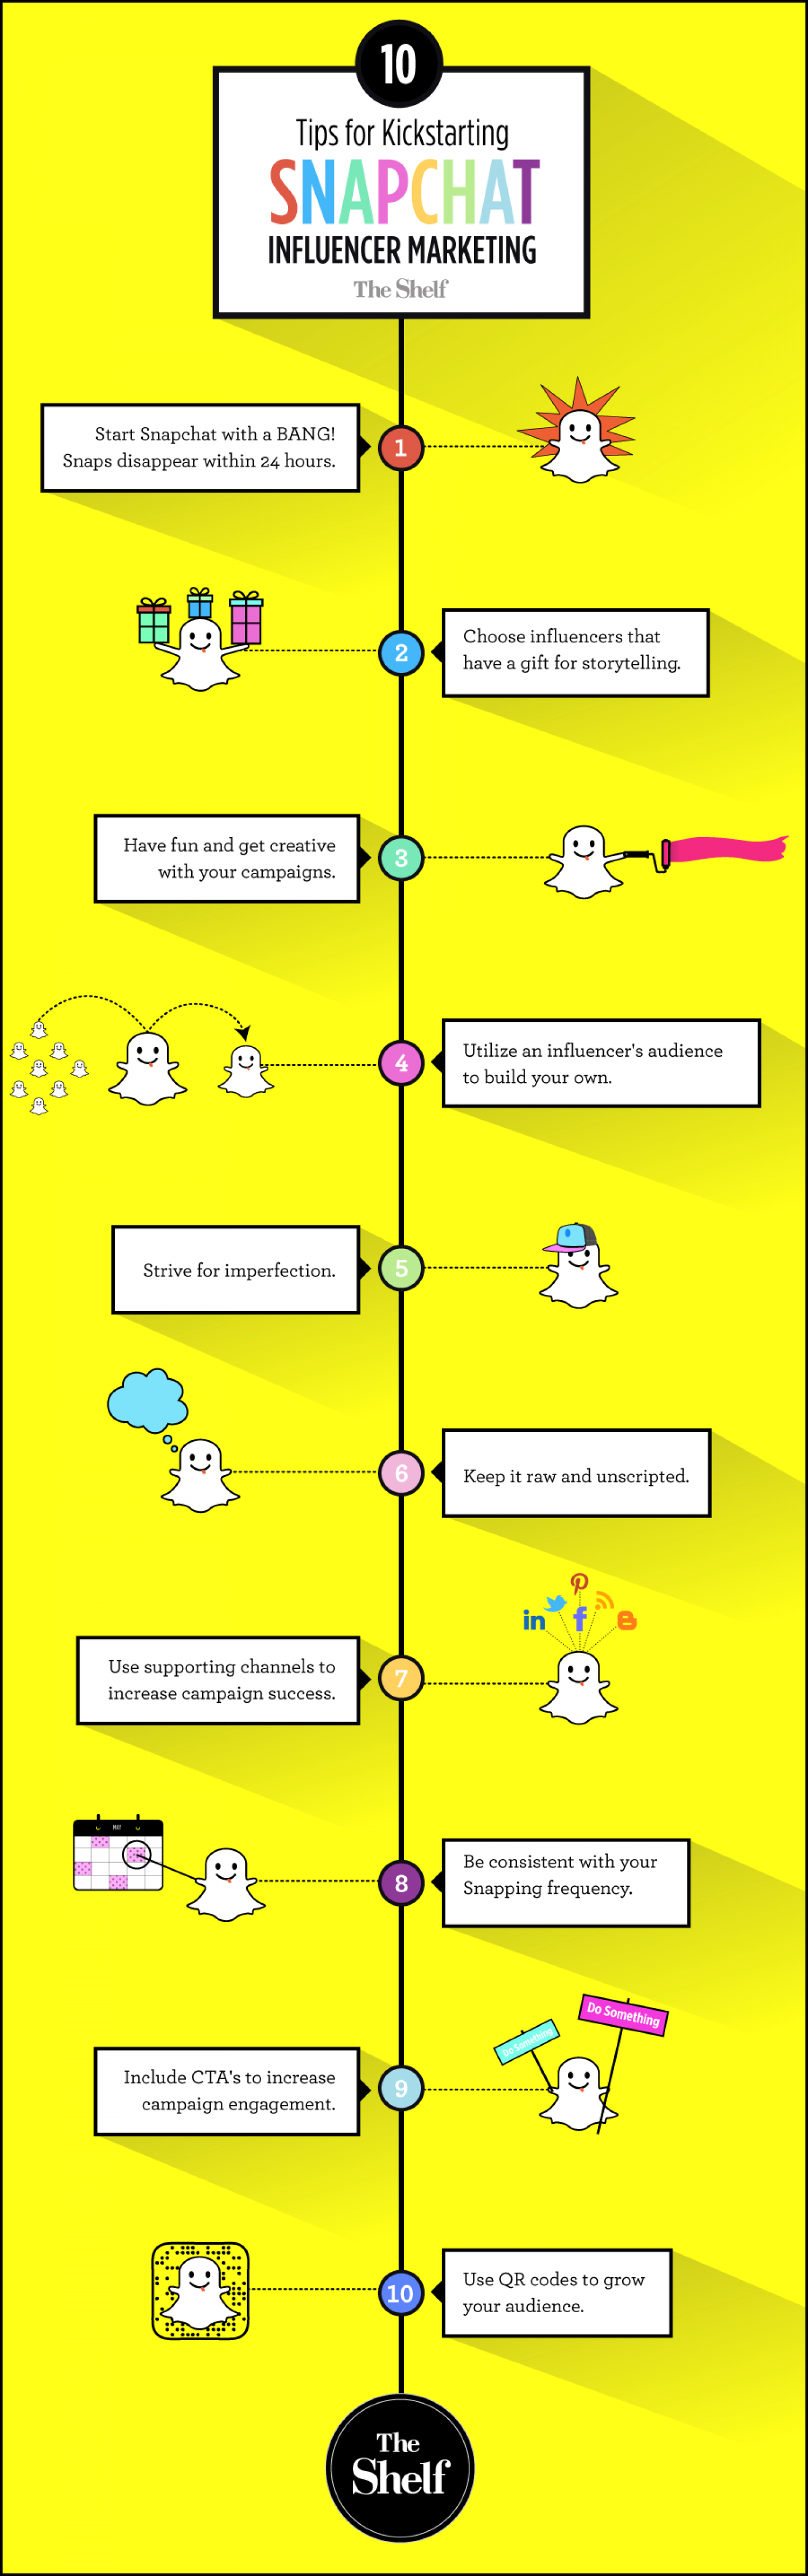 Snapchat sign up create account - Infographic Tips For Kickstarting Snapchat Influencer Marketing